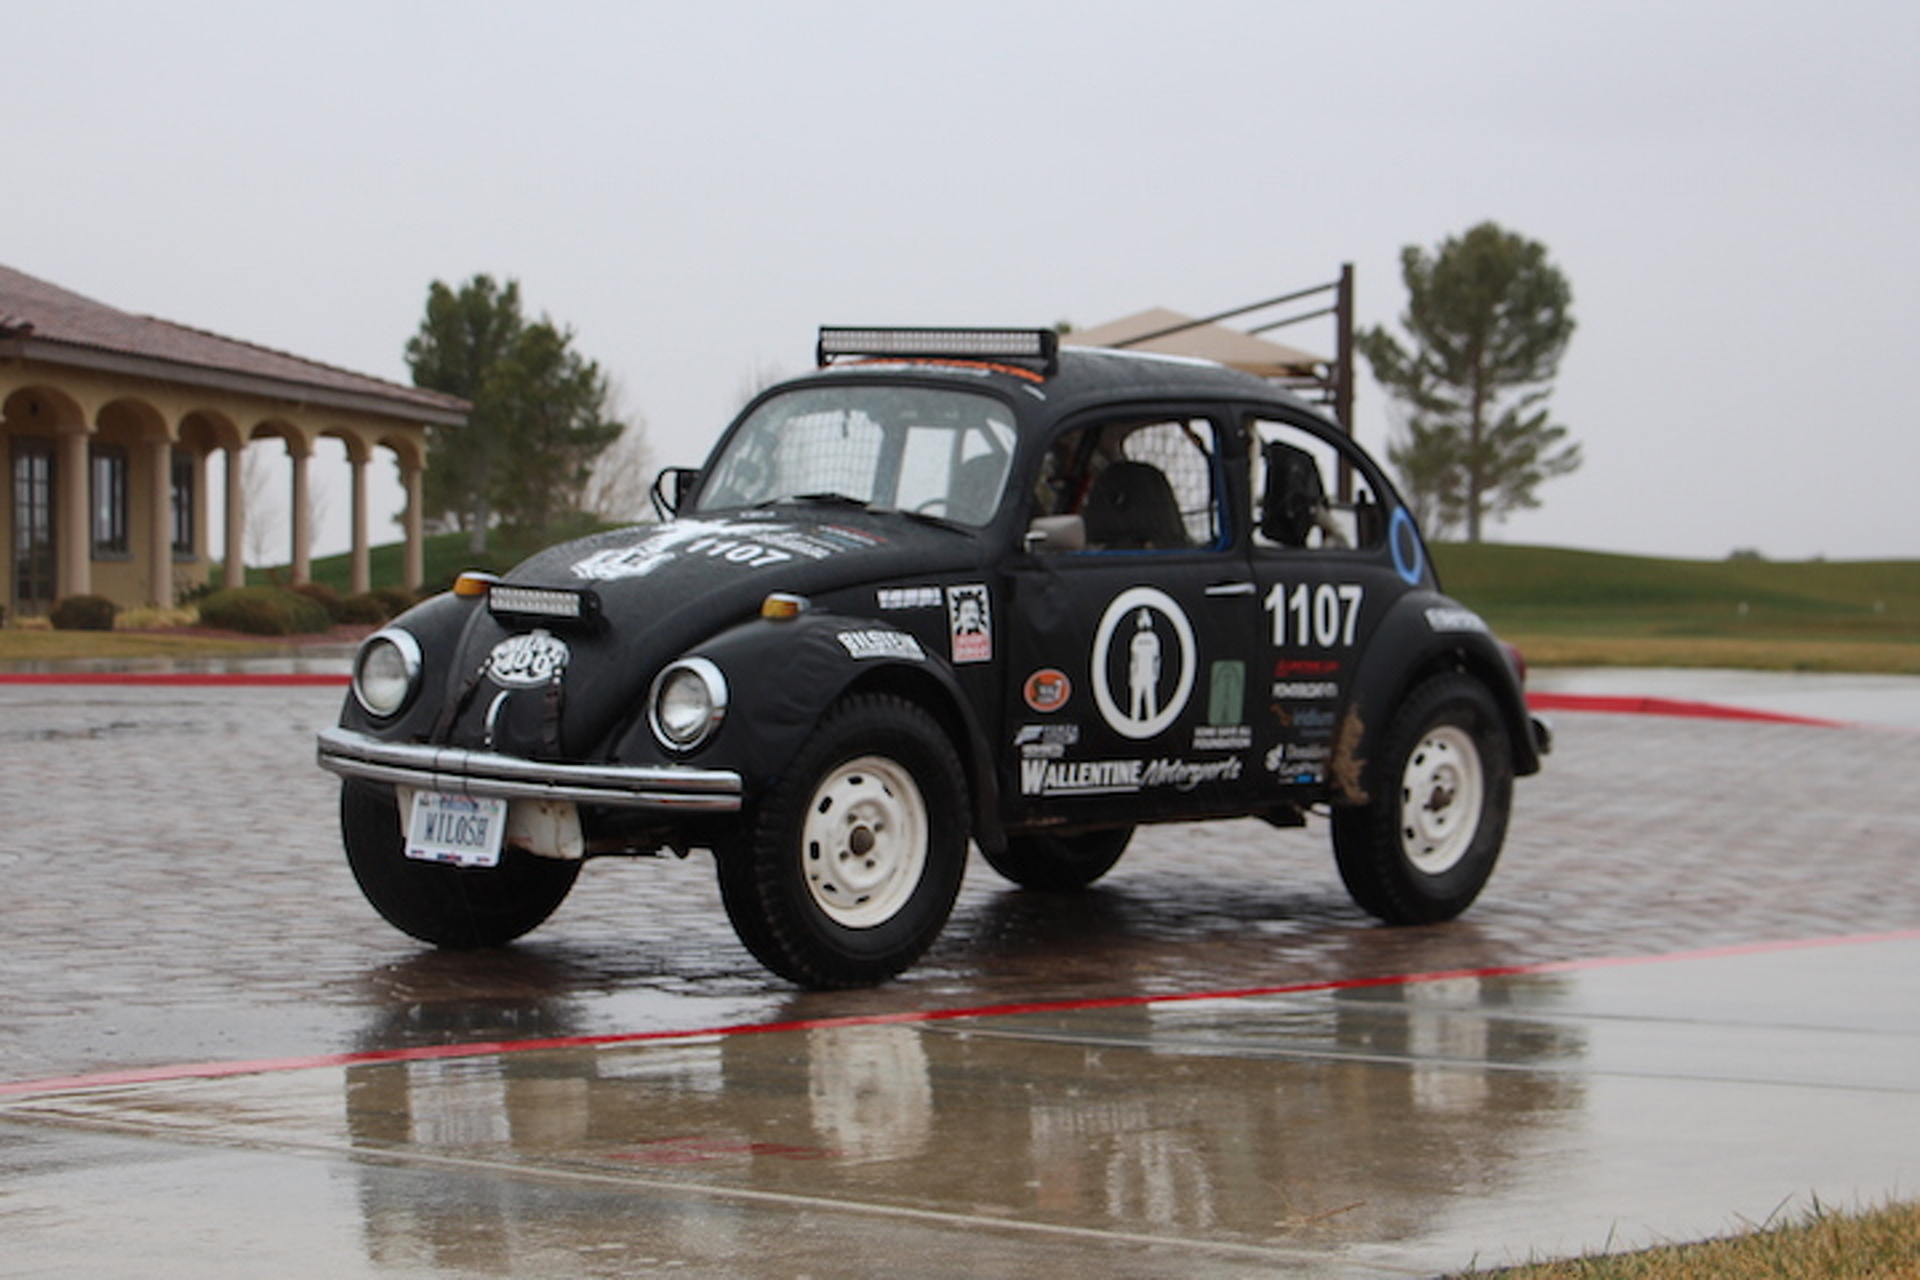 Driving A Clic Baja Bug Is Scary Heavenly Experience Everyone Needs To Try Once